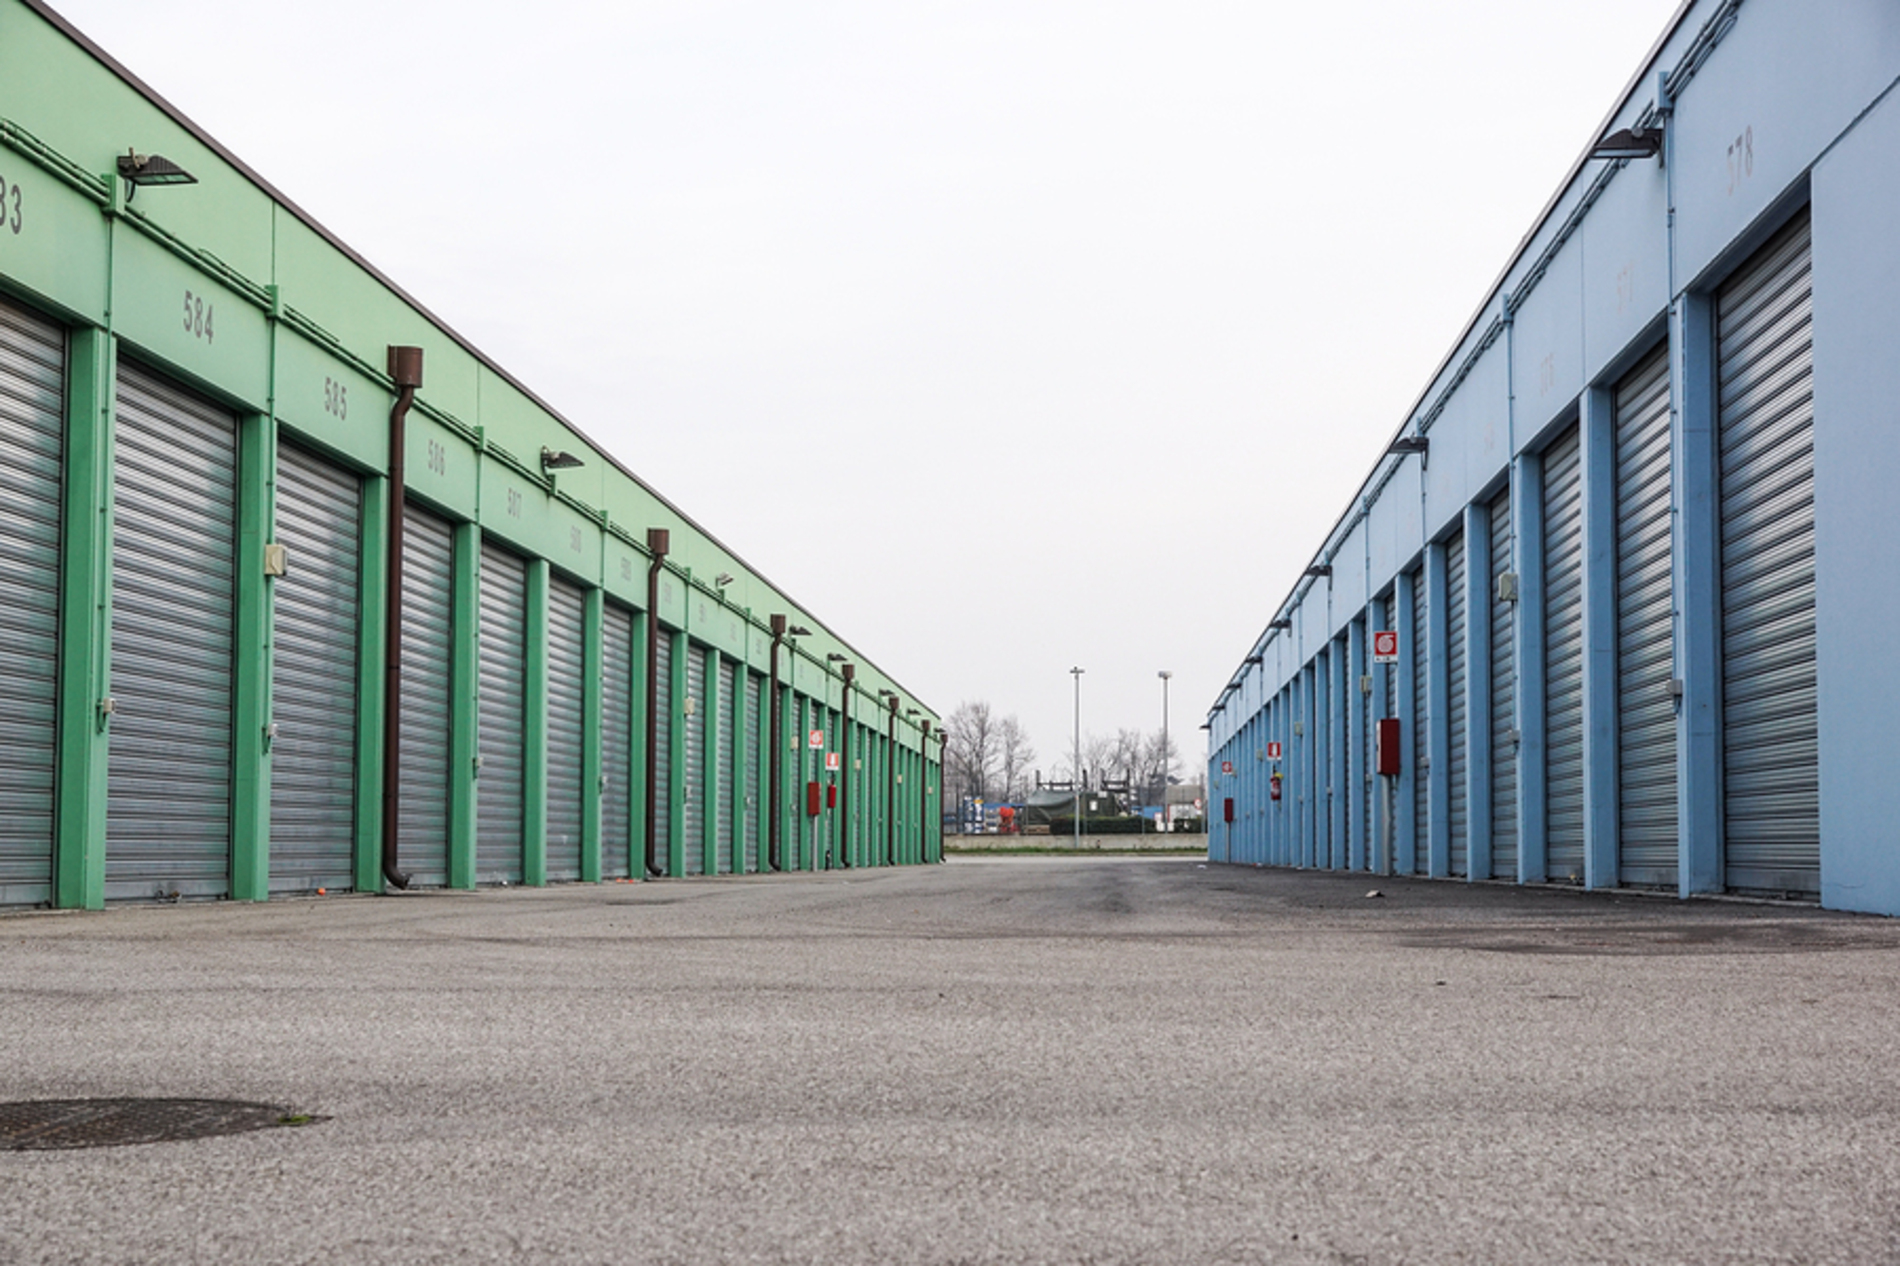 Row of storage units.